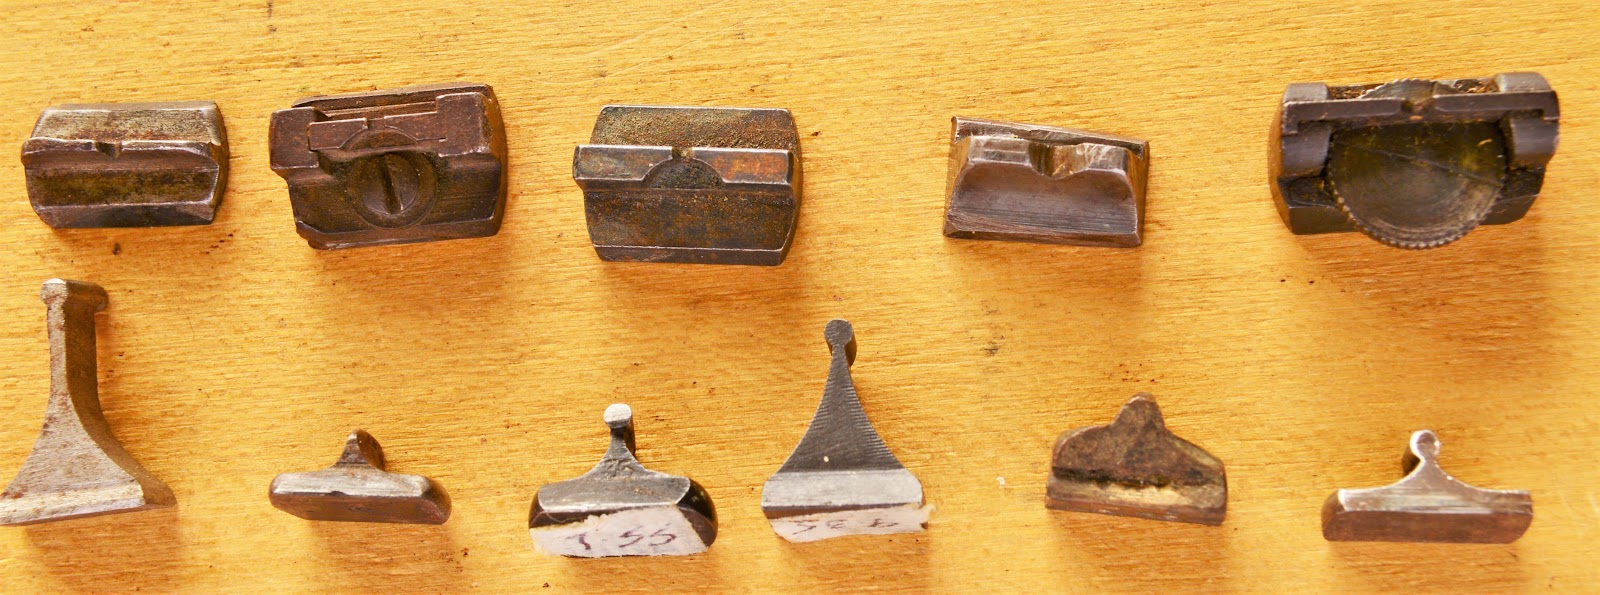 An array of classic open sights